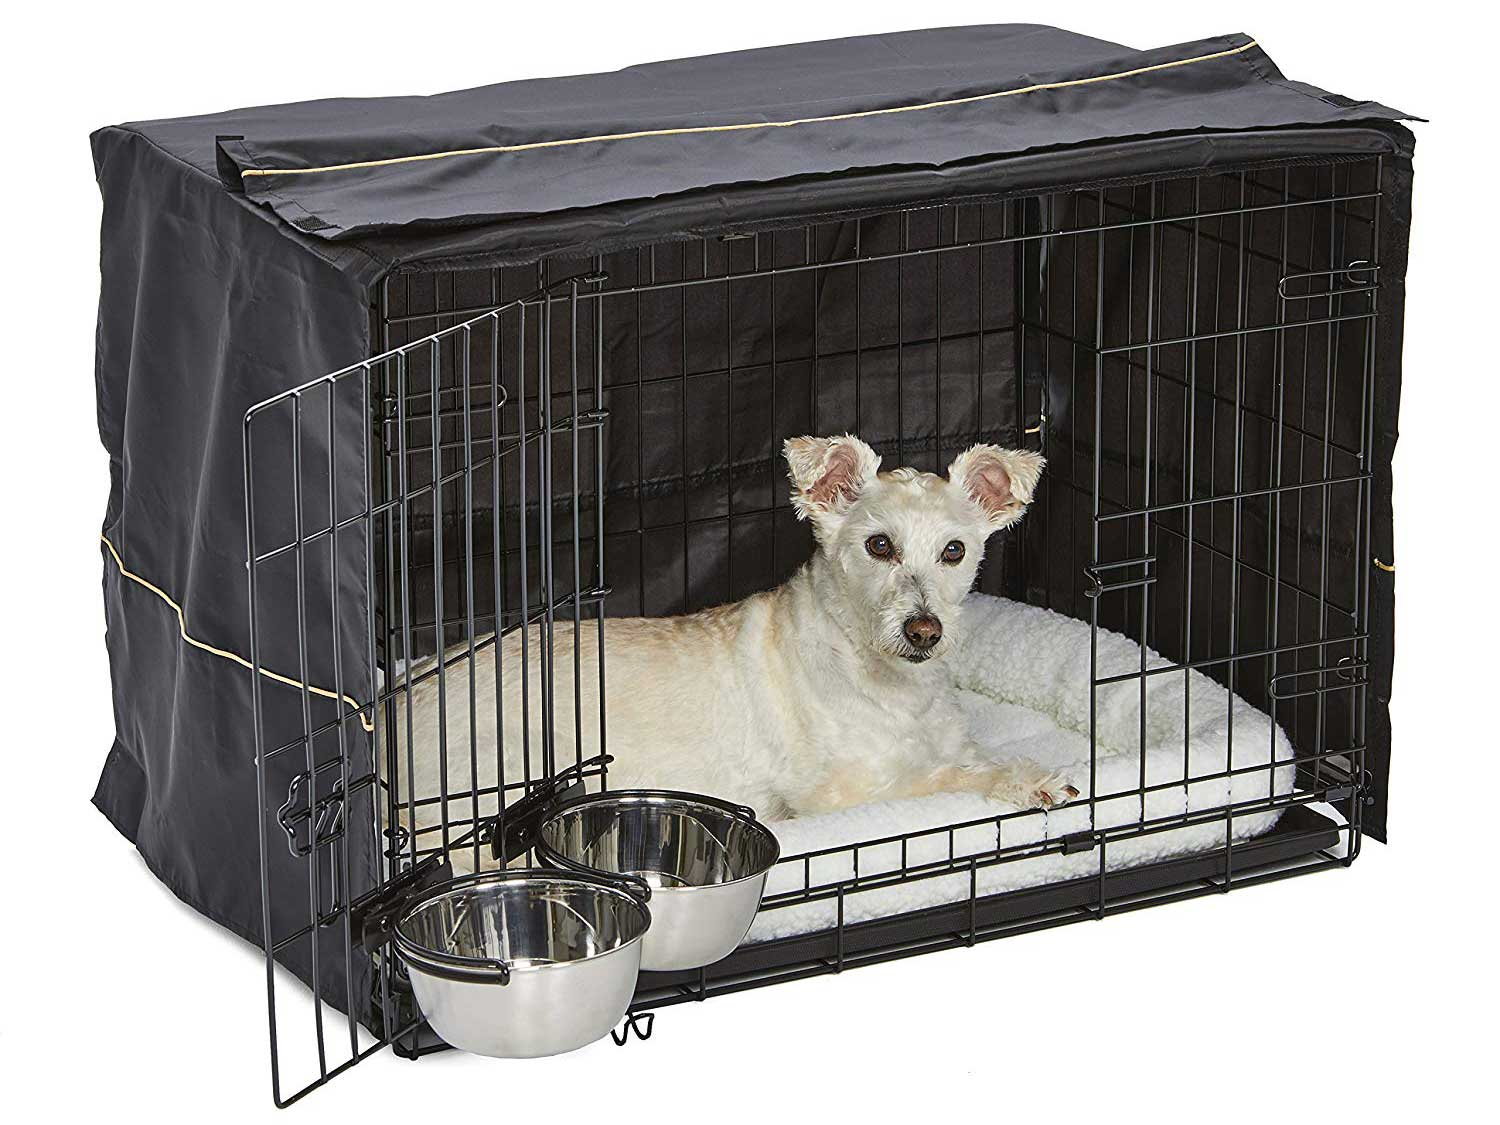 dog in a covered dog crate